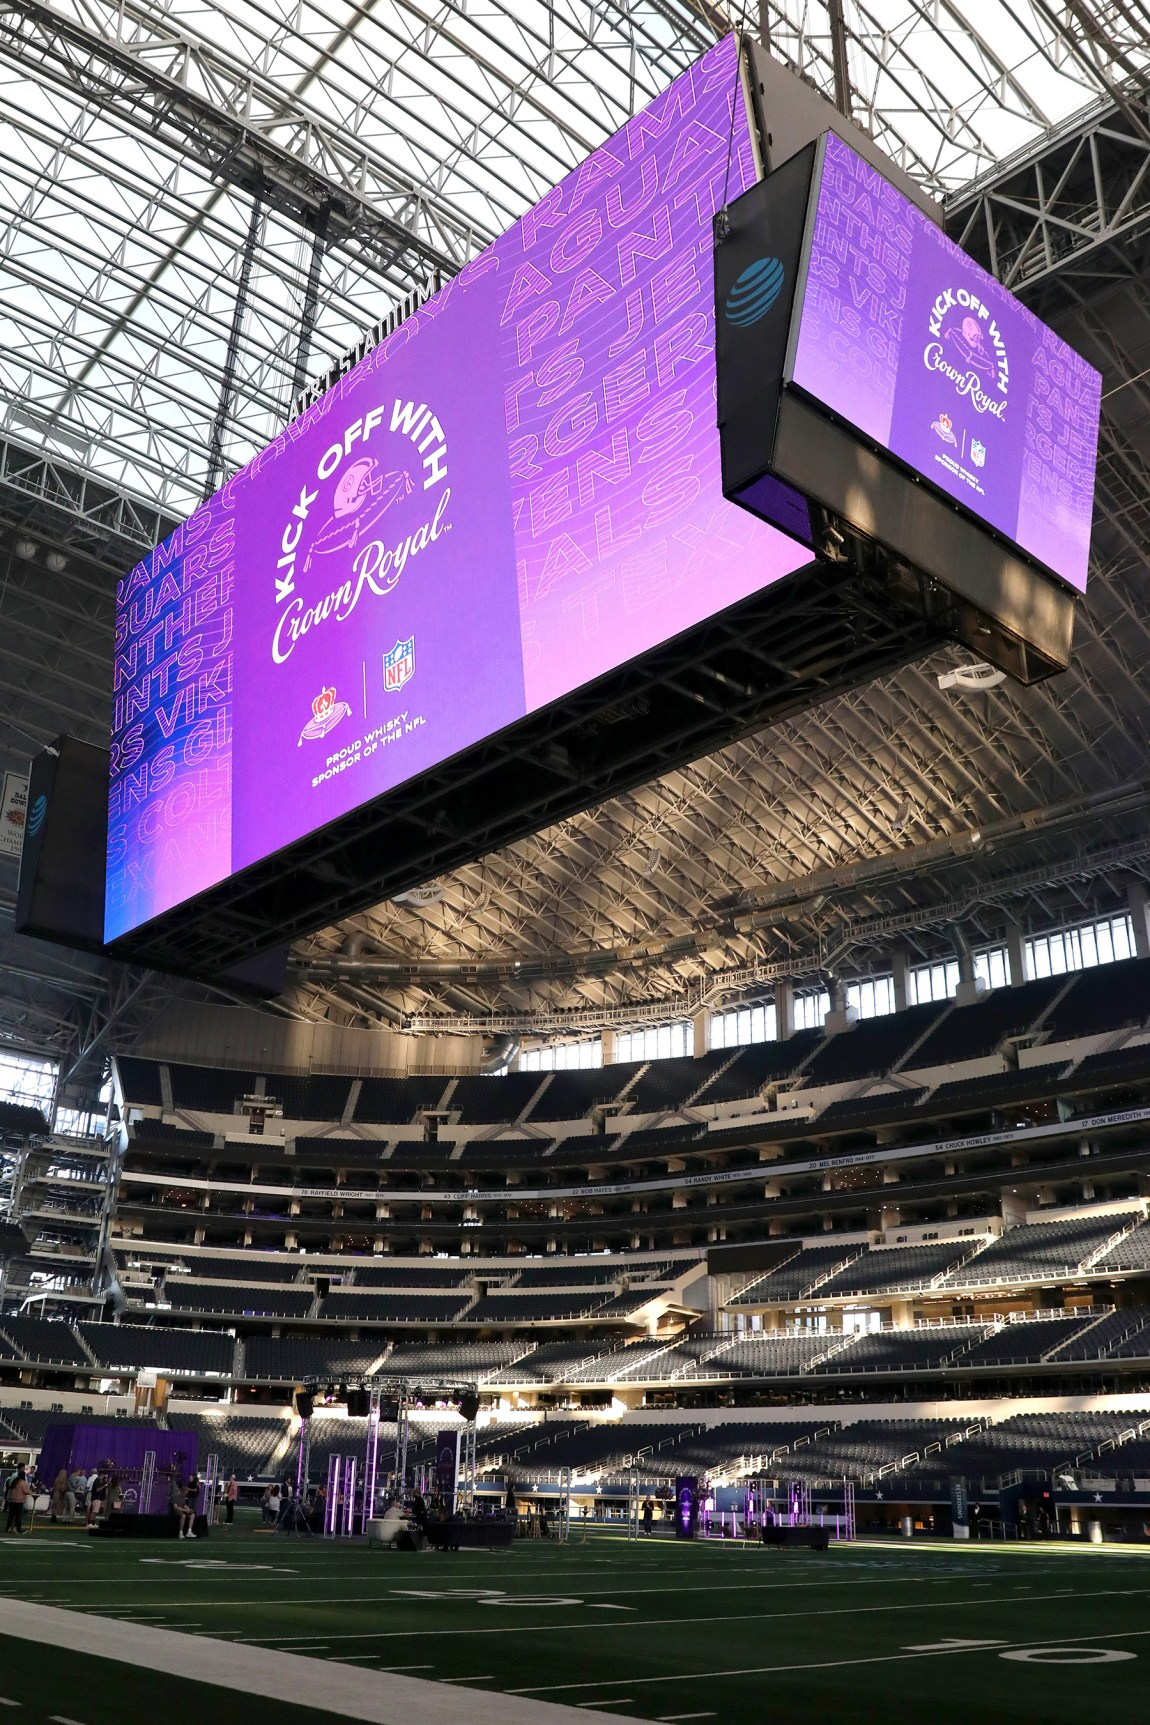 Crown Royal celebrates groundbreaking partnership with the NFL through 'Kick Off with Crown Royal', a season-long community initiative to inspire generosity towards hospitality personnel and military members who make game day great.